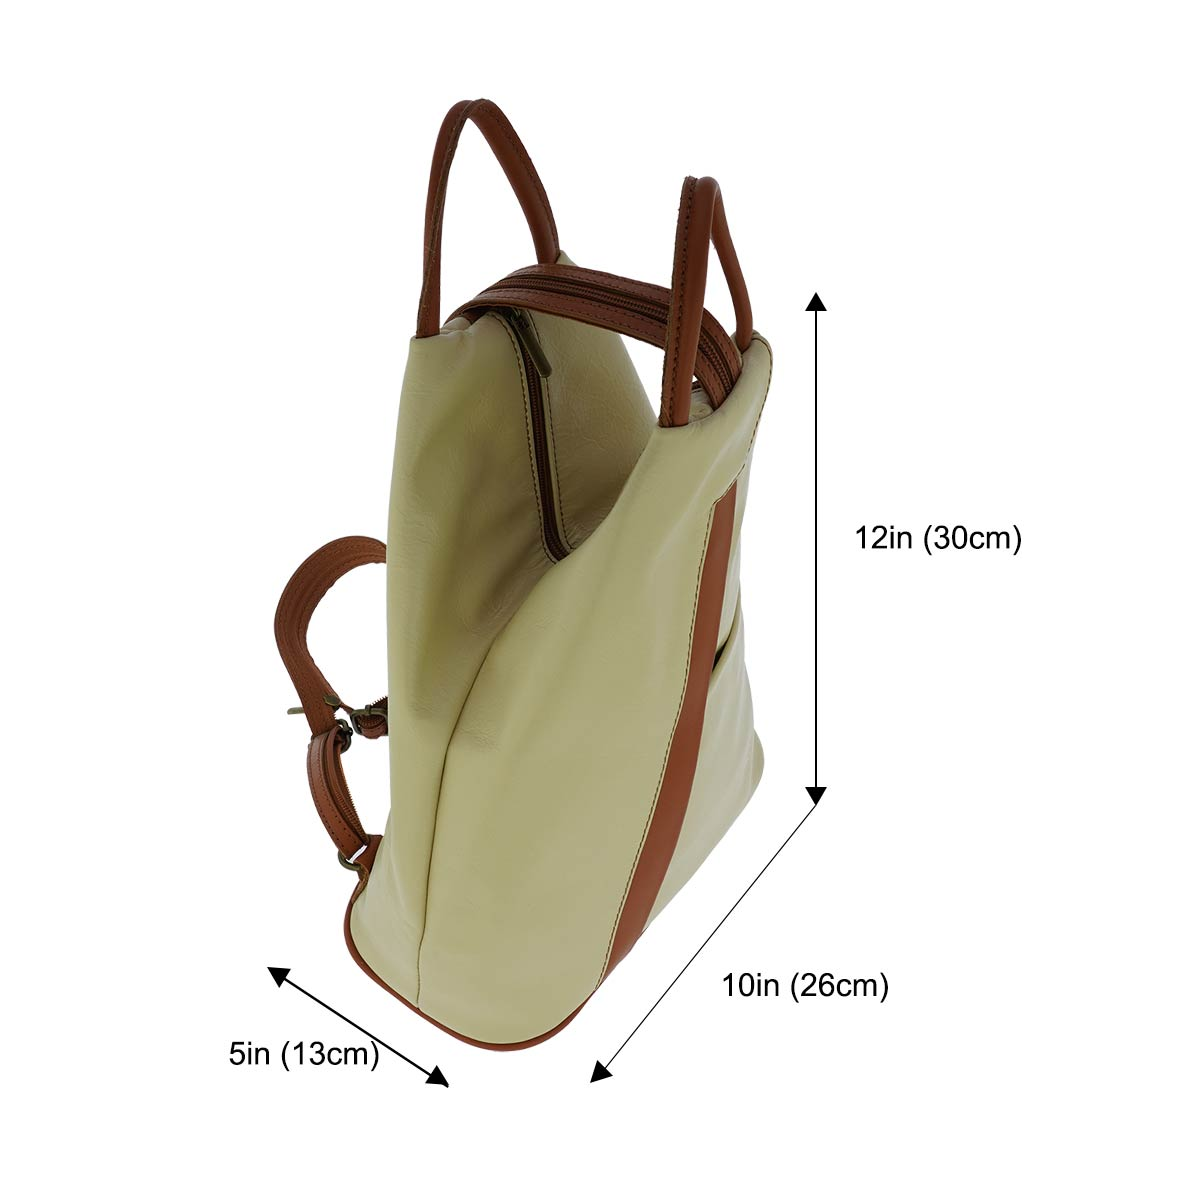 Fioretta Italian Genuine Leather Top Handle Backpack Purse Shoulder Bag Handbag Rucksack For Women - Beige Brown